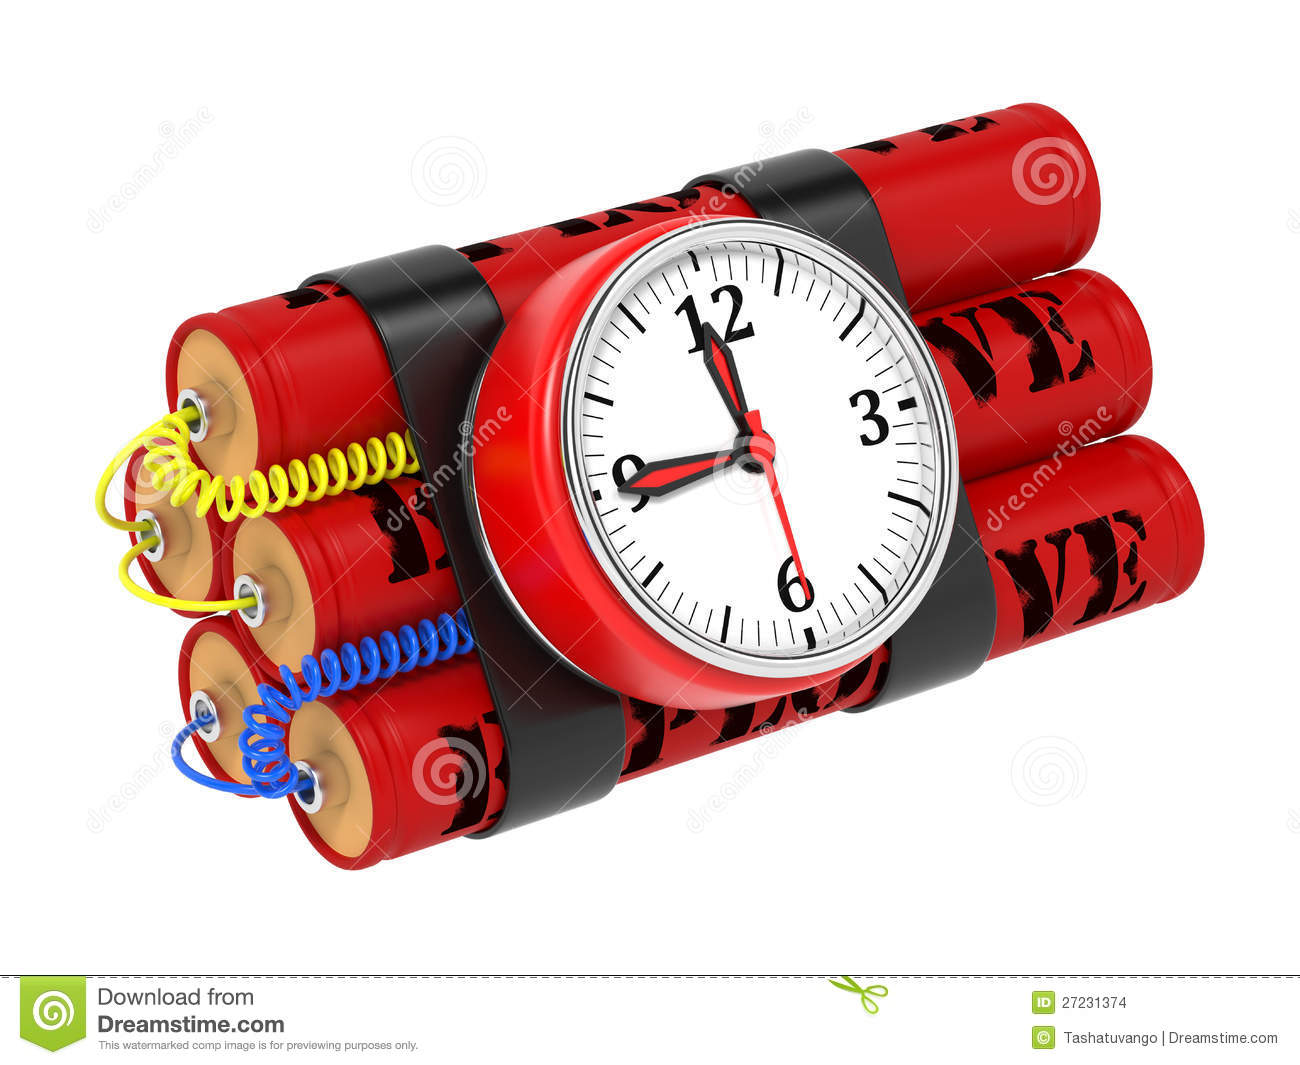 More similar stock images of ` Dynamite Bomb with Clock Timer. `